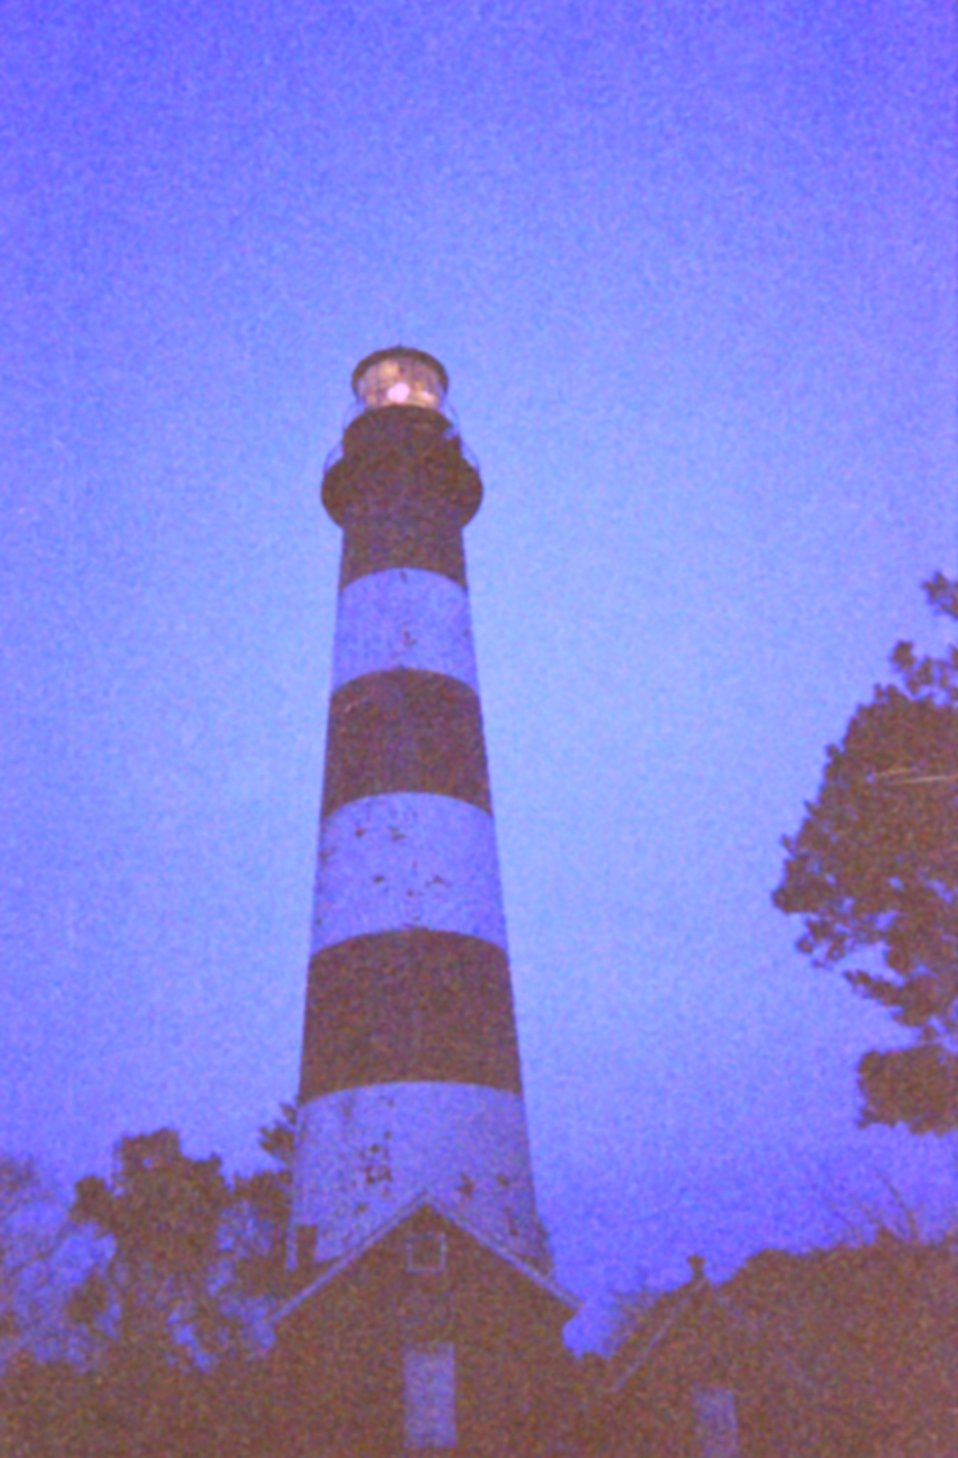 Assateague Light House at dusk, right after the light was turned on.